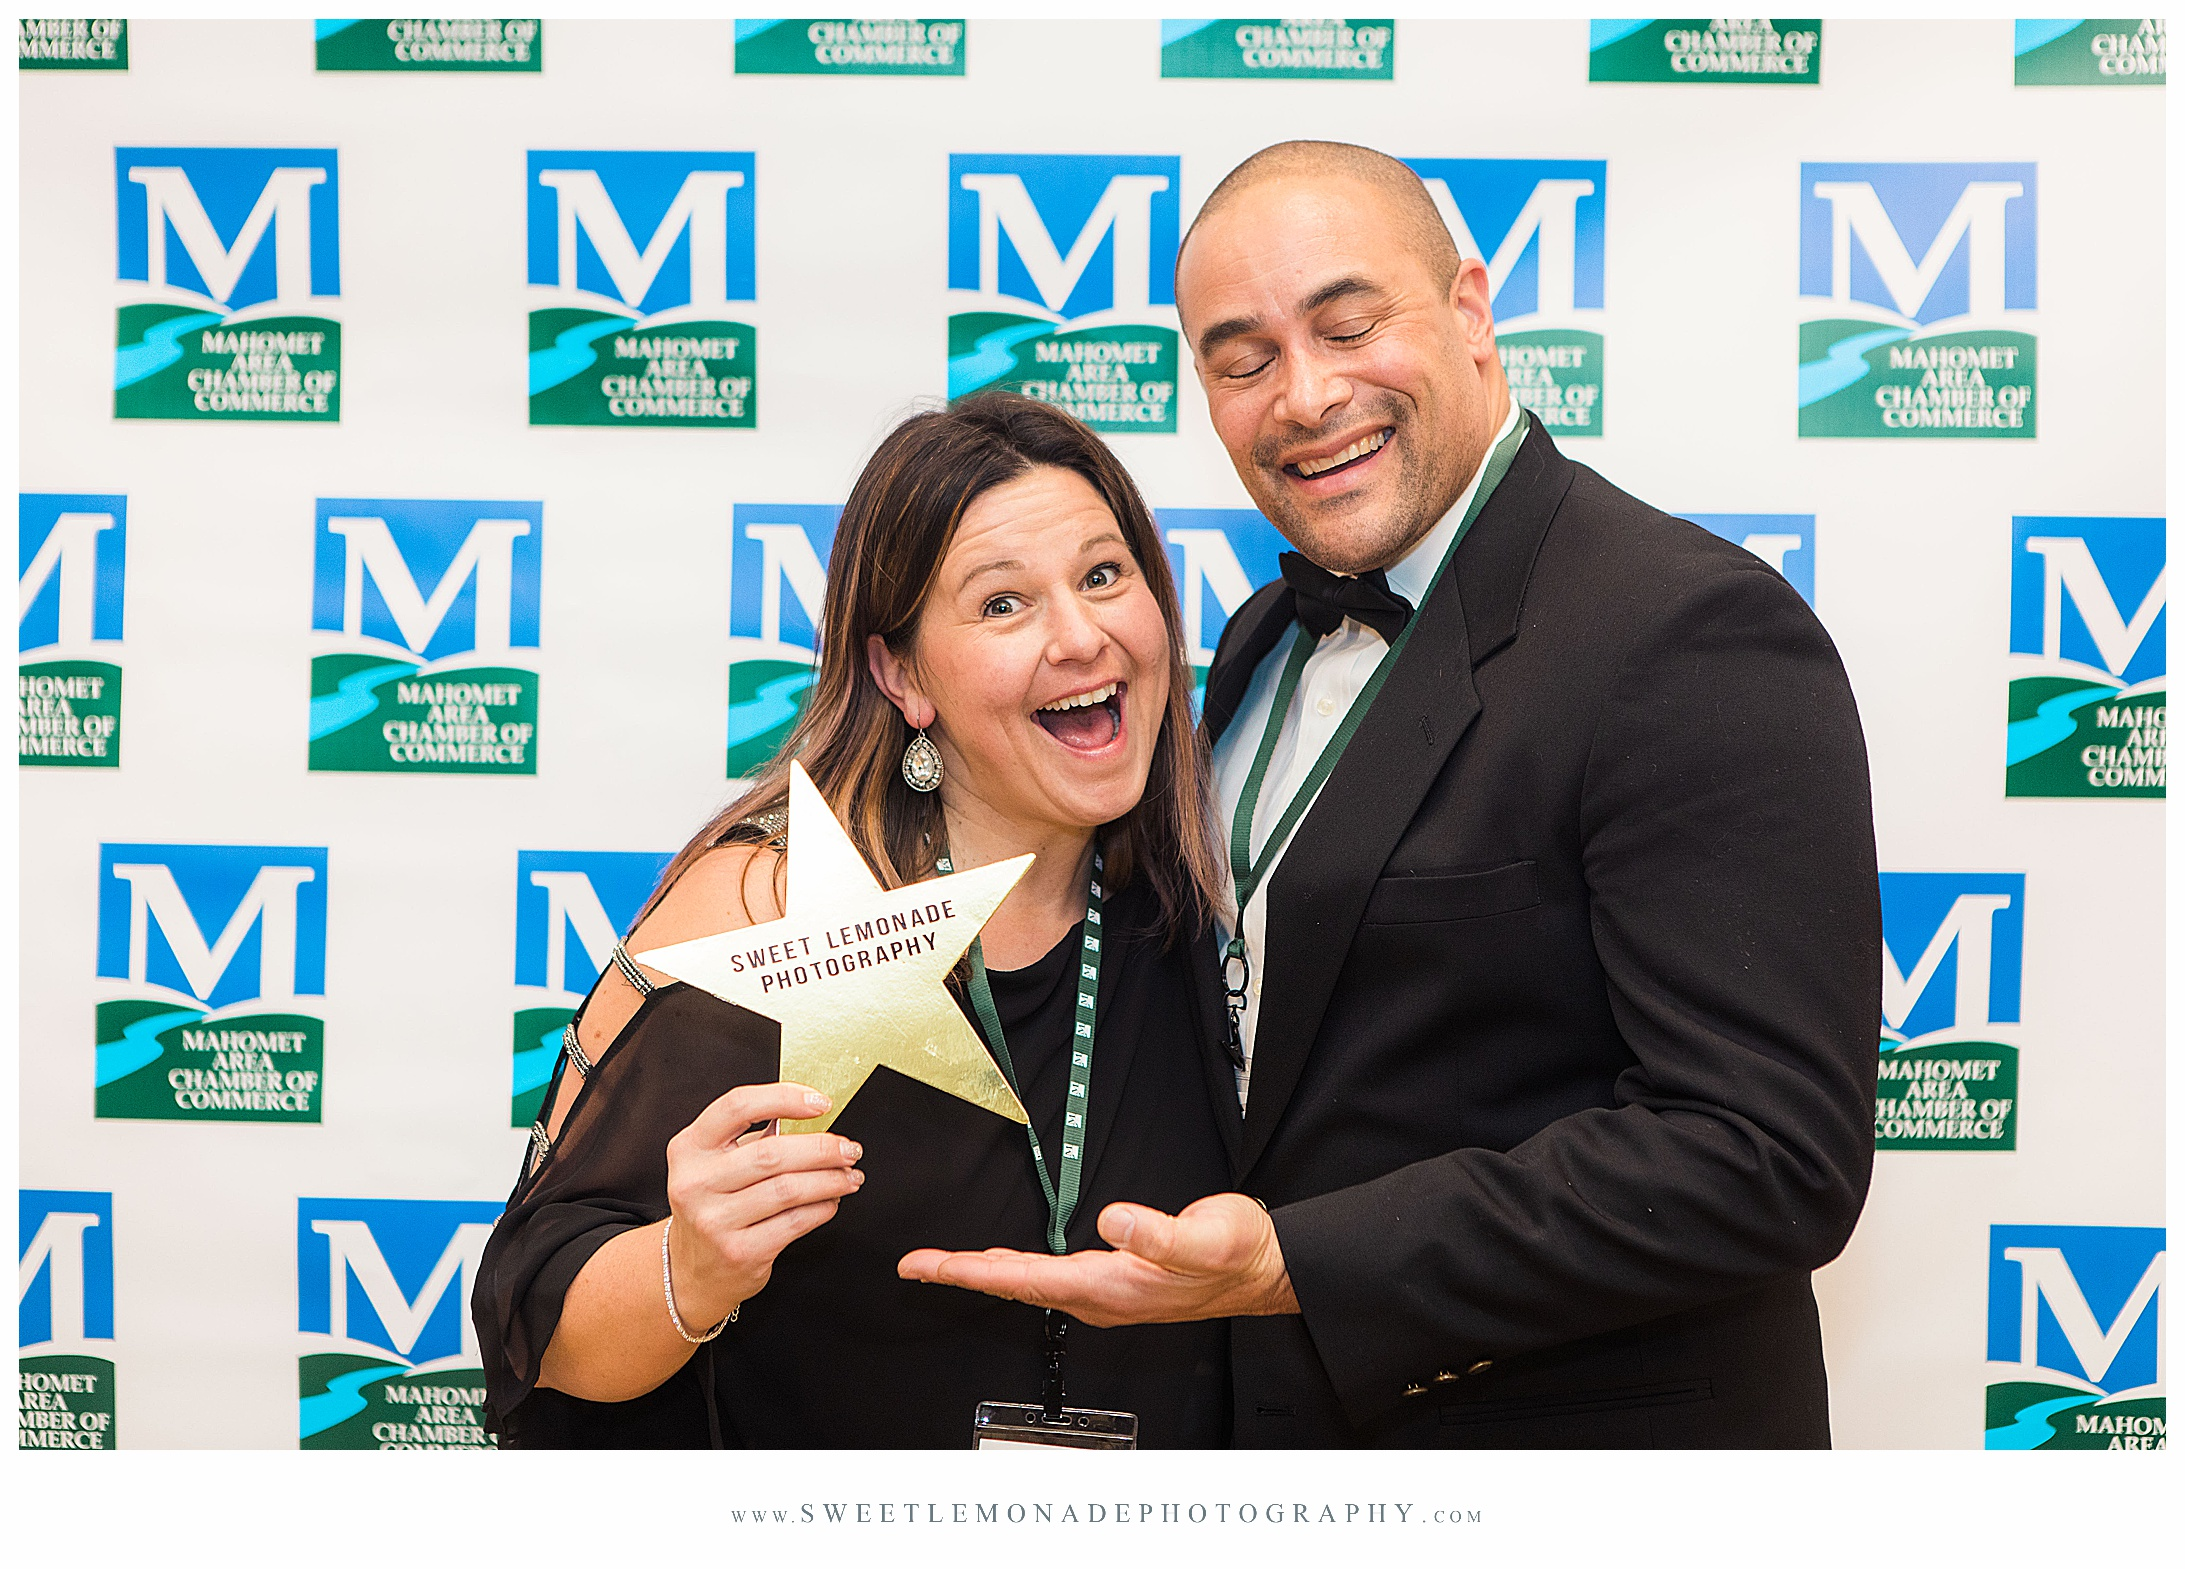 Sorry Stacy. It's the only photo I have of me with MY star. And I don't get in front of the camera often so I have to share a pic of us with your eyes closed. ha! Oh, if you need of a realtor, give this guy a call. Check out this awesome video of Stacy LaCour that Matt Difanis of Re/Max produced about this guy I'm happy to call my friend.